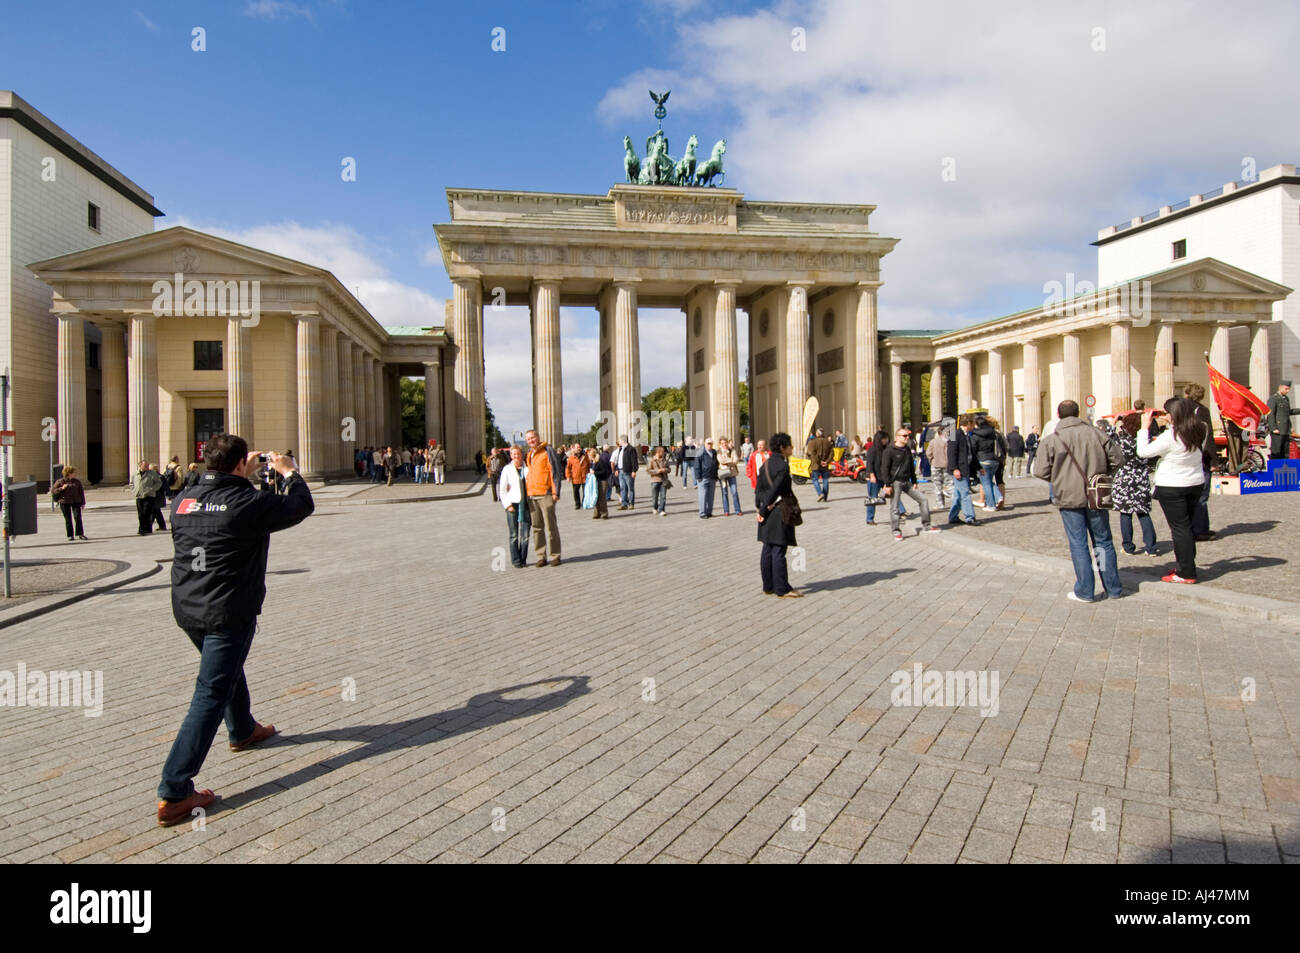 A wide angle view of tourists taking photographs at the Brandenburger Tor  or Brandenburg Gate on